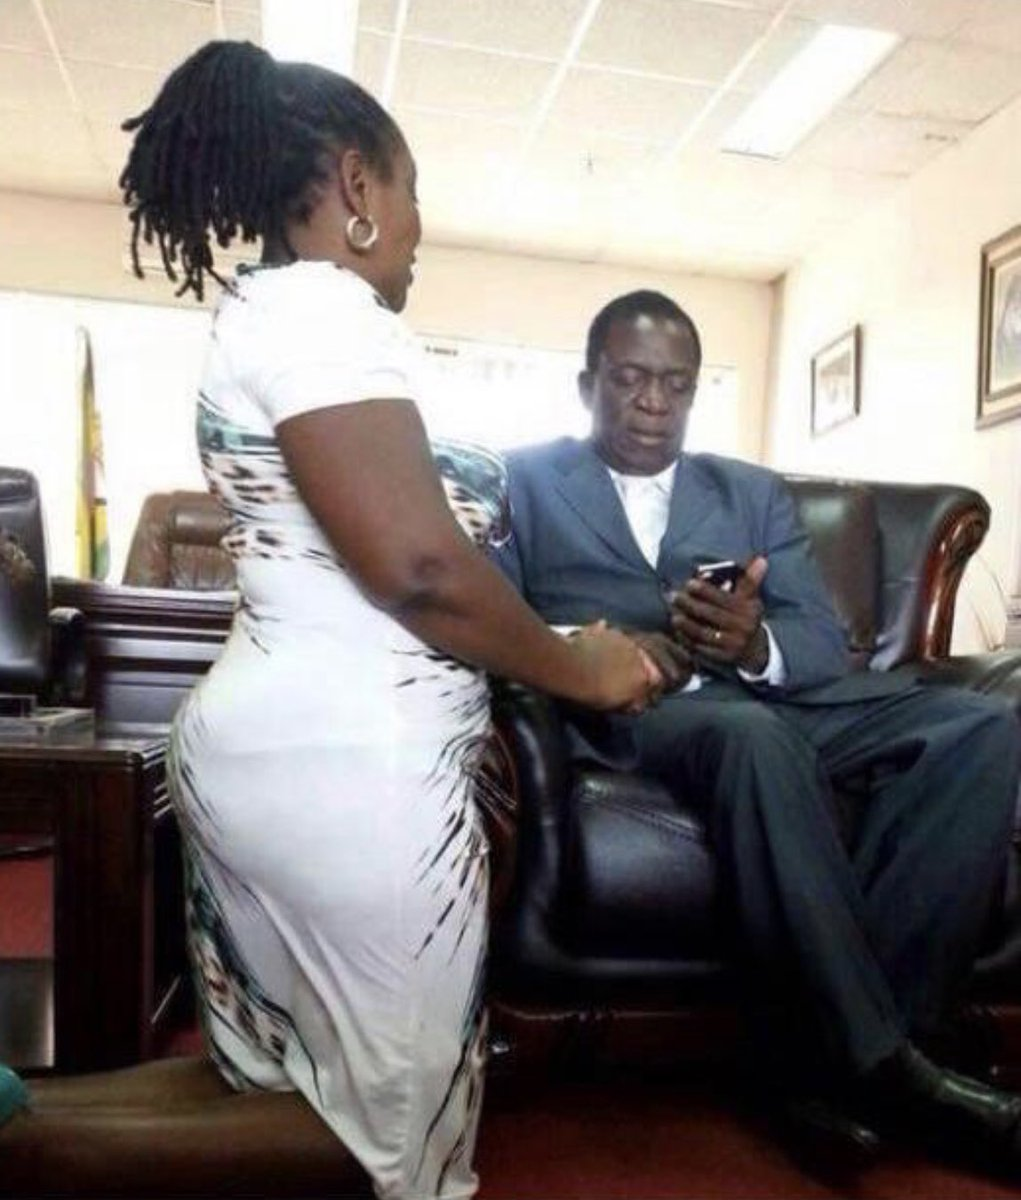 """Hopewell Chin'ono on Twitter: """"Henrietta Rushwaya who was caught with 6  kilograms of Gold at Harare International Airport, seen here kneeling  before Zimbabwe's President in a file photograph. She is a ZANUPF"""